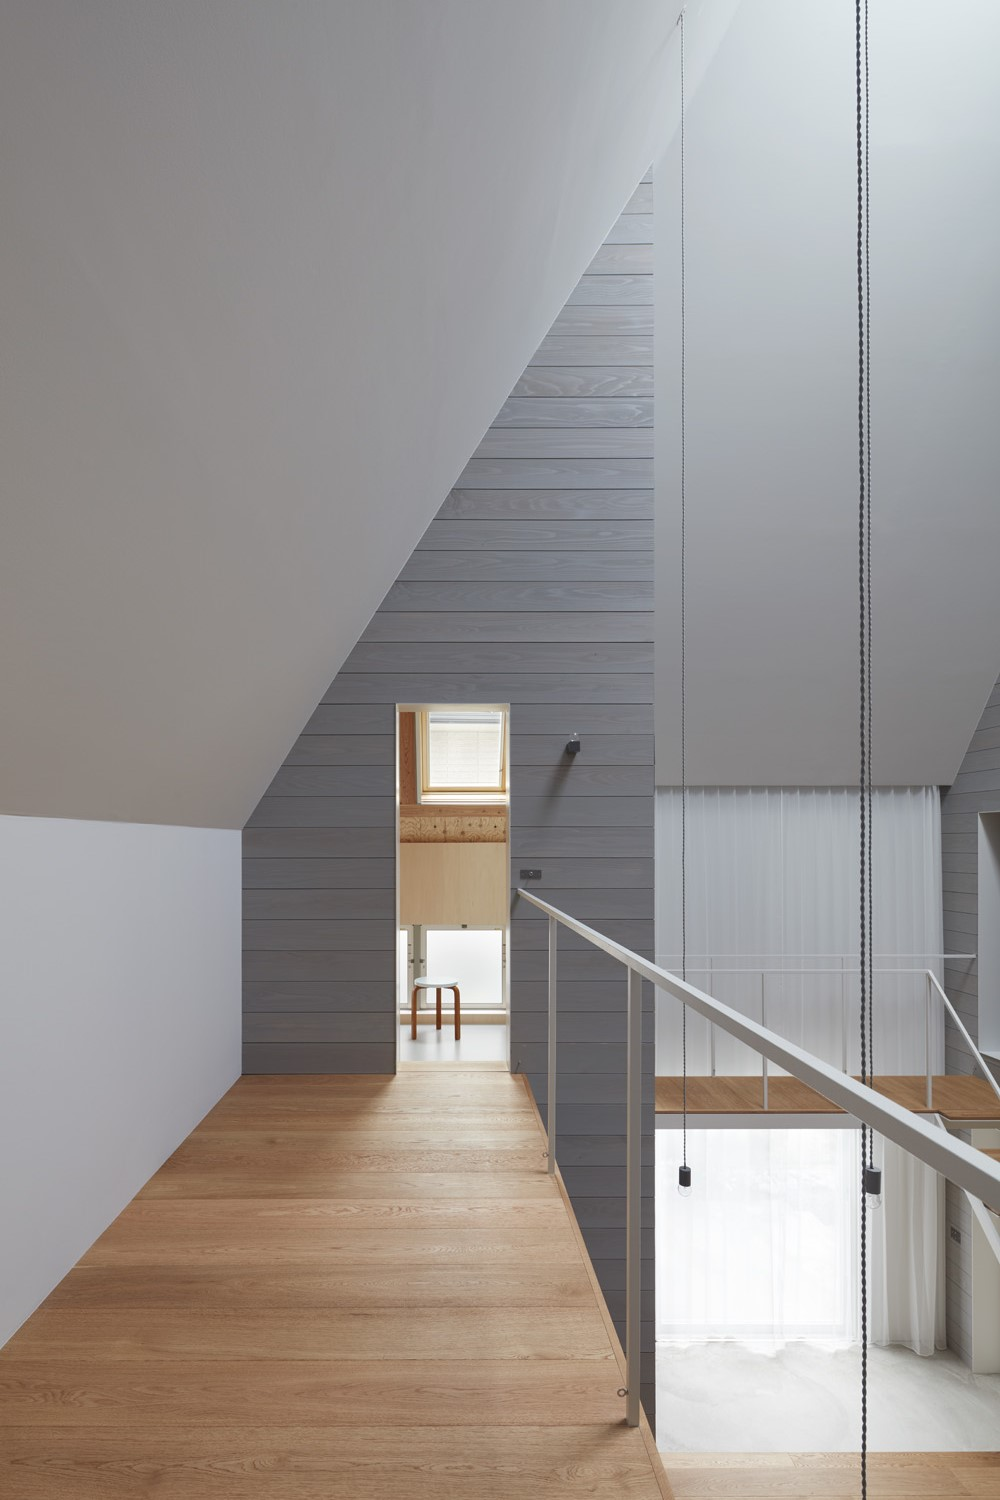 House in Iwakura designed by Airhouse